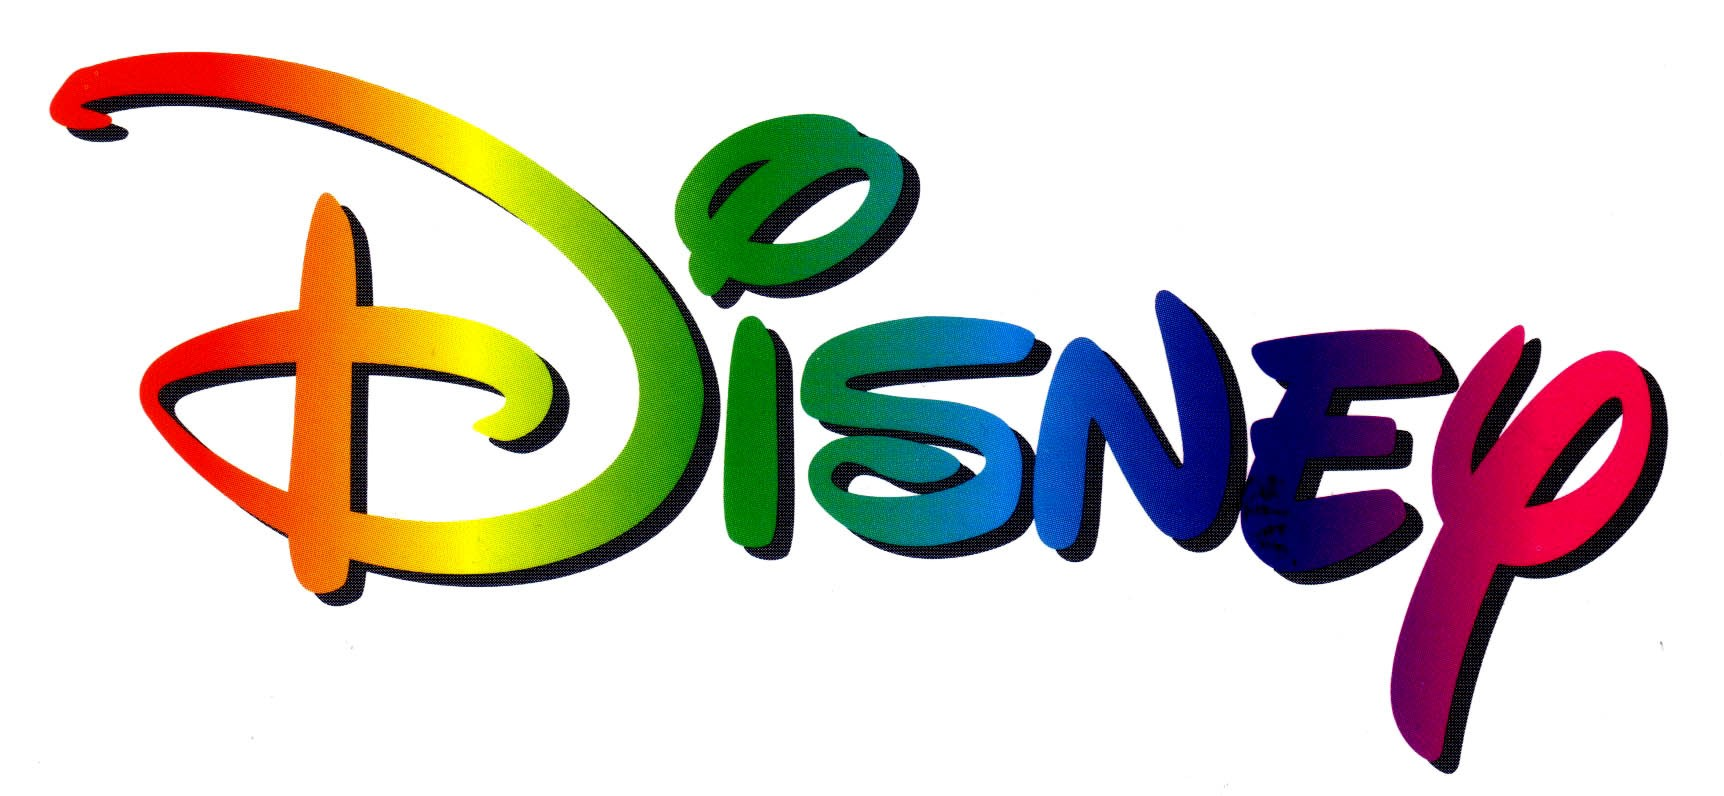 Disney HD Logo wallpaper Disney HD Logo hd wallpaper background 1724x796